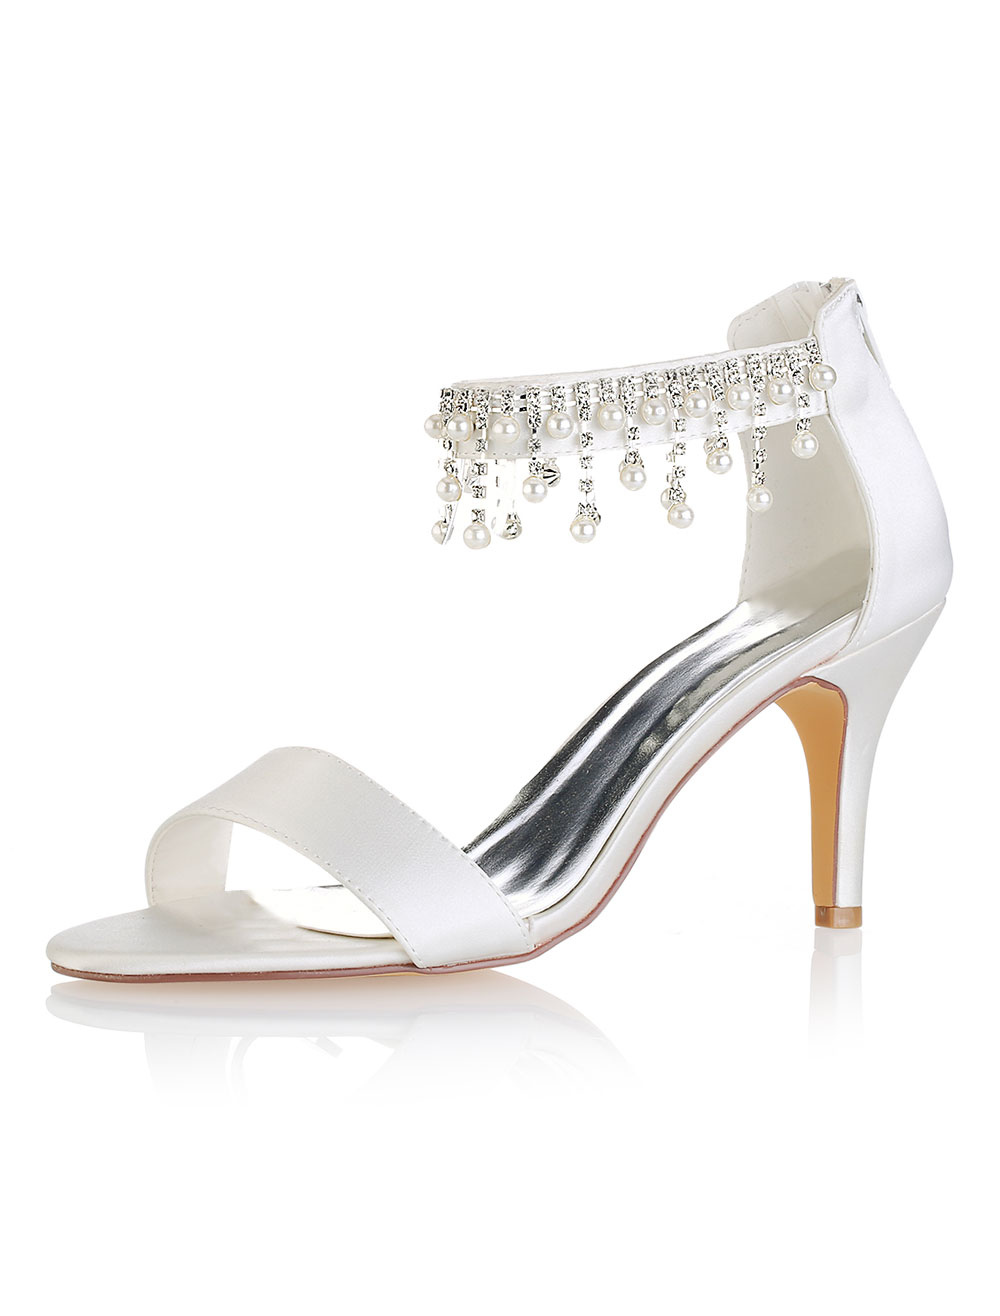 Buy Ivory Wedding Shoes Silk Open Toe Pearls Ankle Strap Bridal Shoes High Heel Sandals for $54.99 in Milanoo store